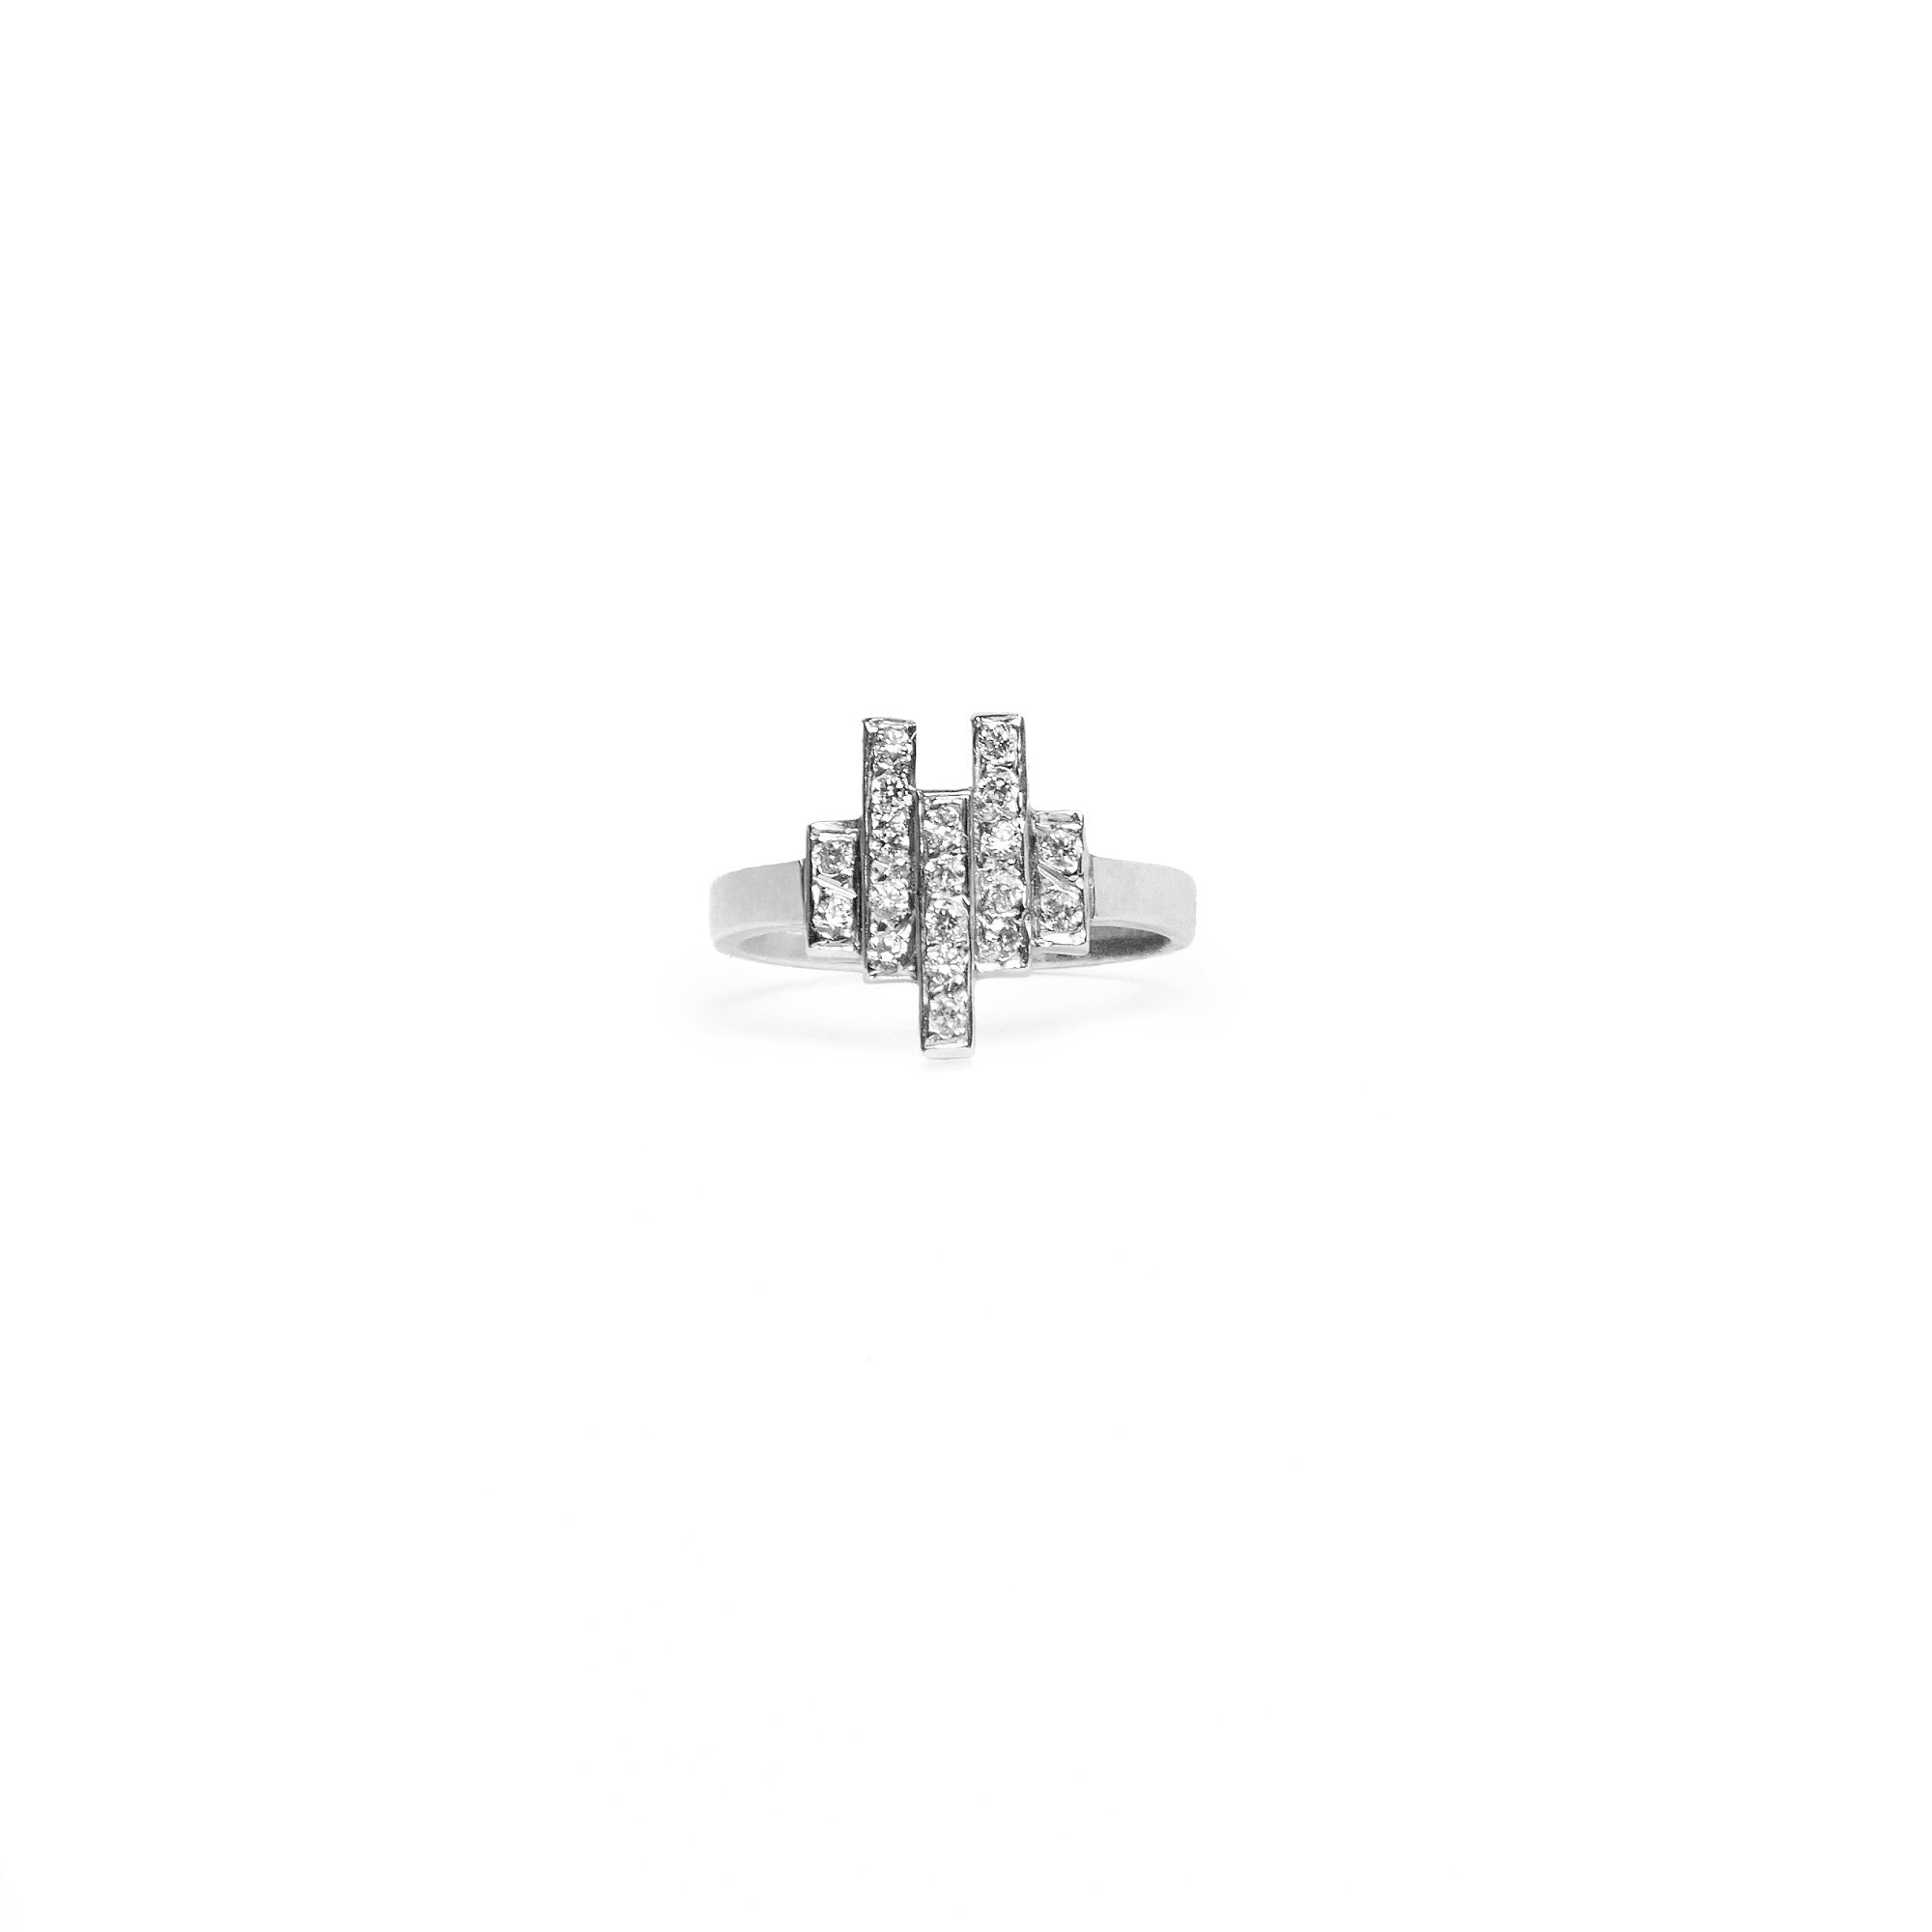 Deco Ring 14k White Gold and Diamonds